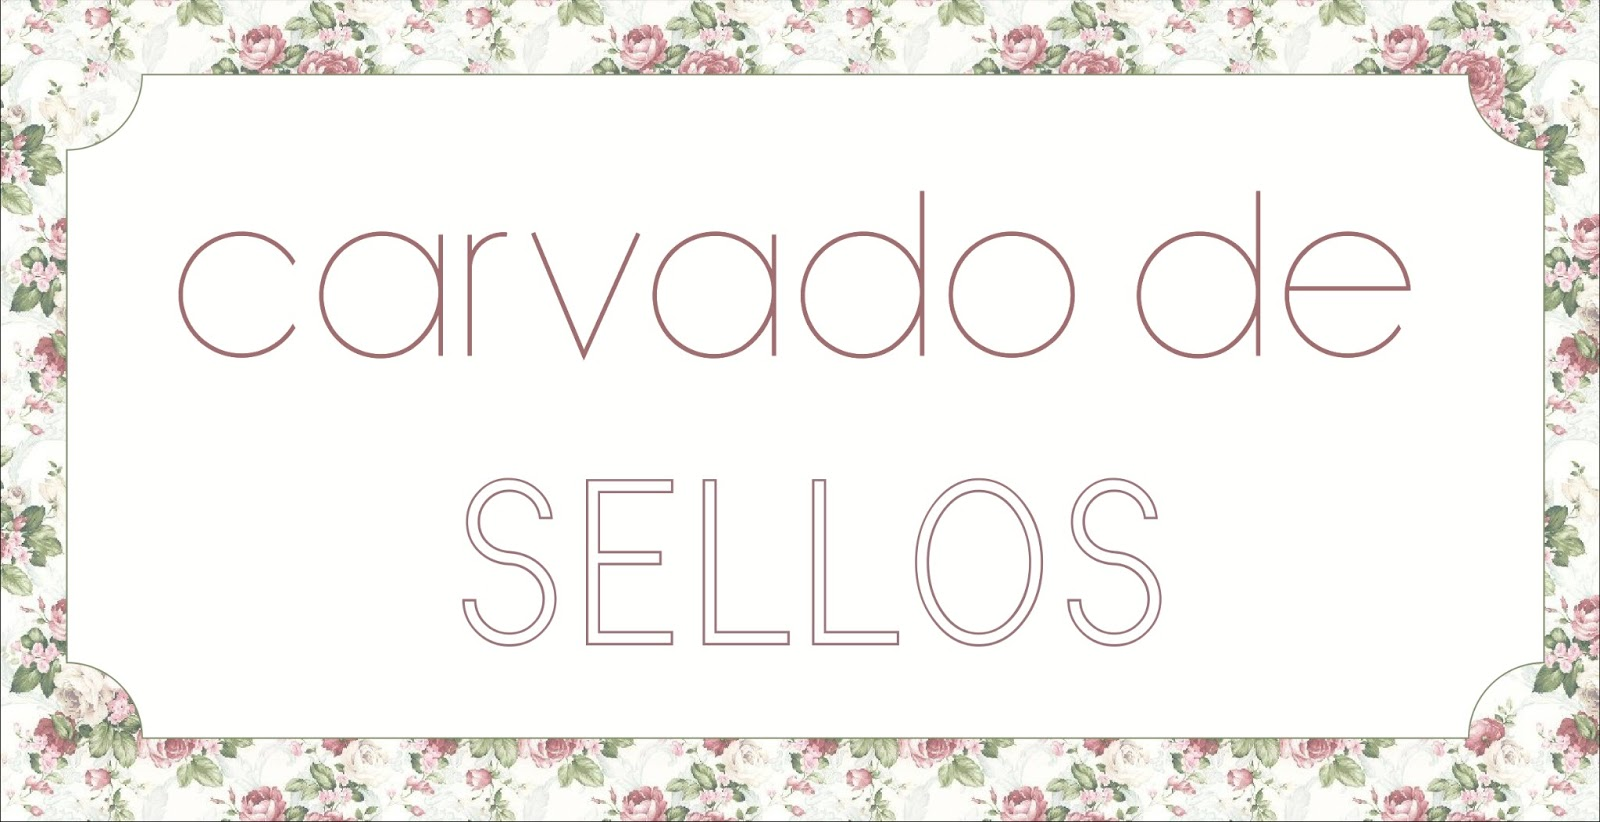 Plantillas de Sellos de Verano - Handbox Craft Lovers | Comunidad ...